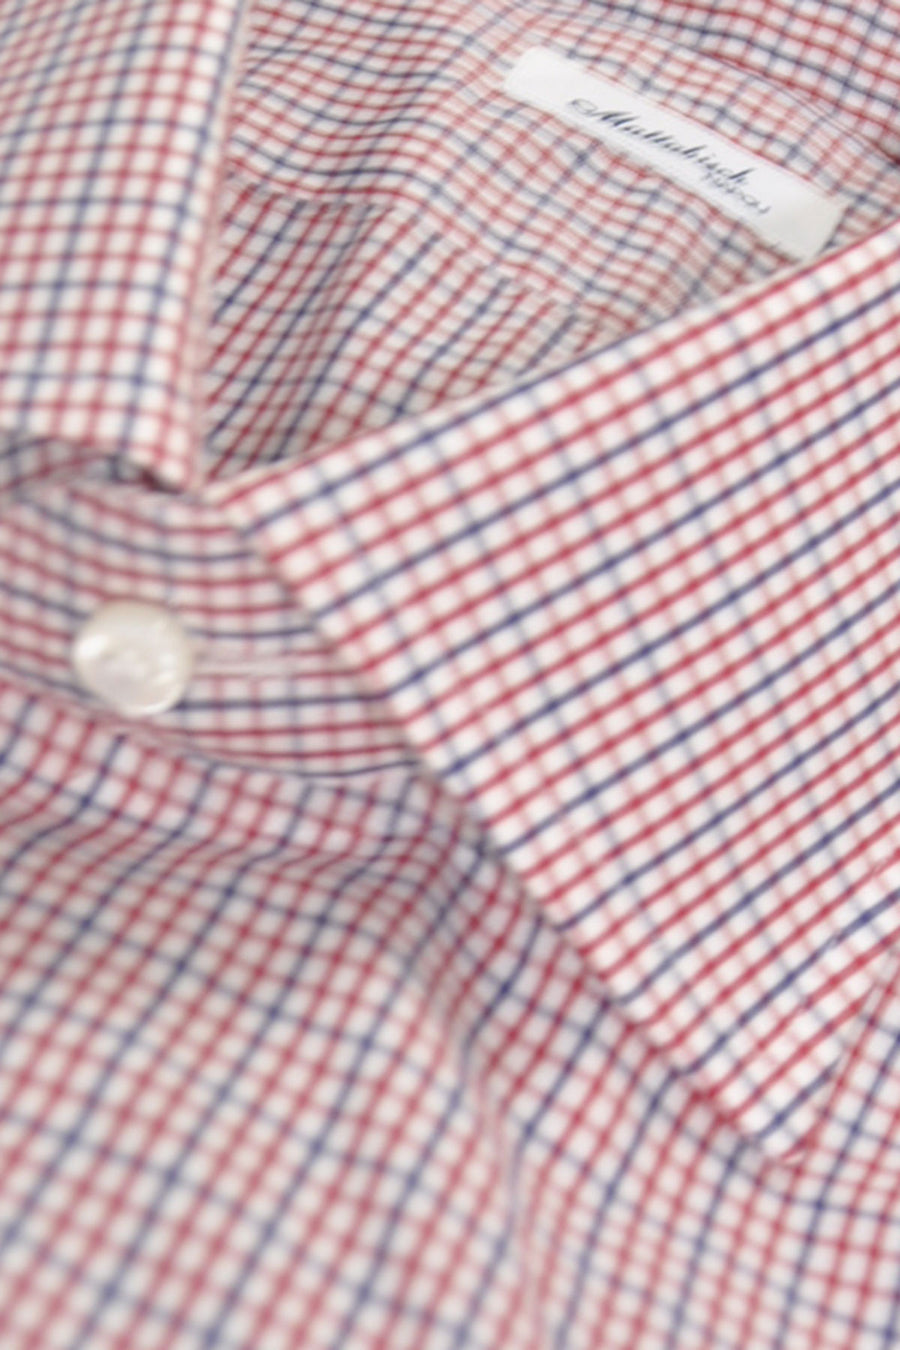 Mattabisch Dress Shirt White Navy Red Check